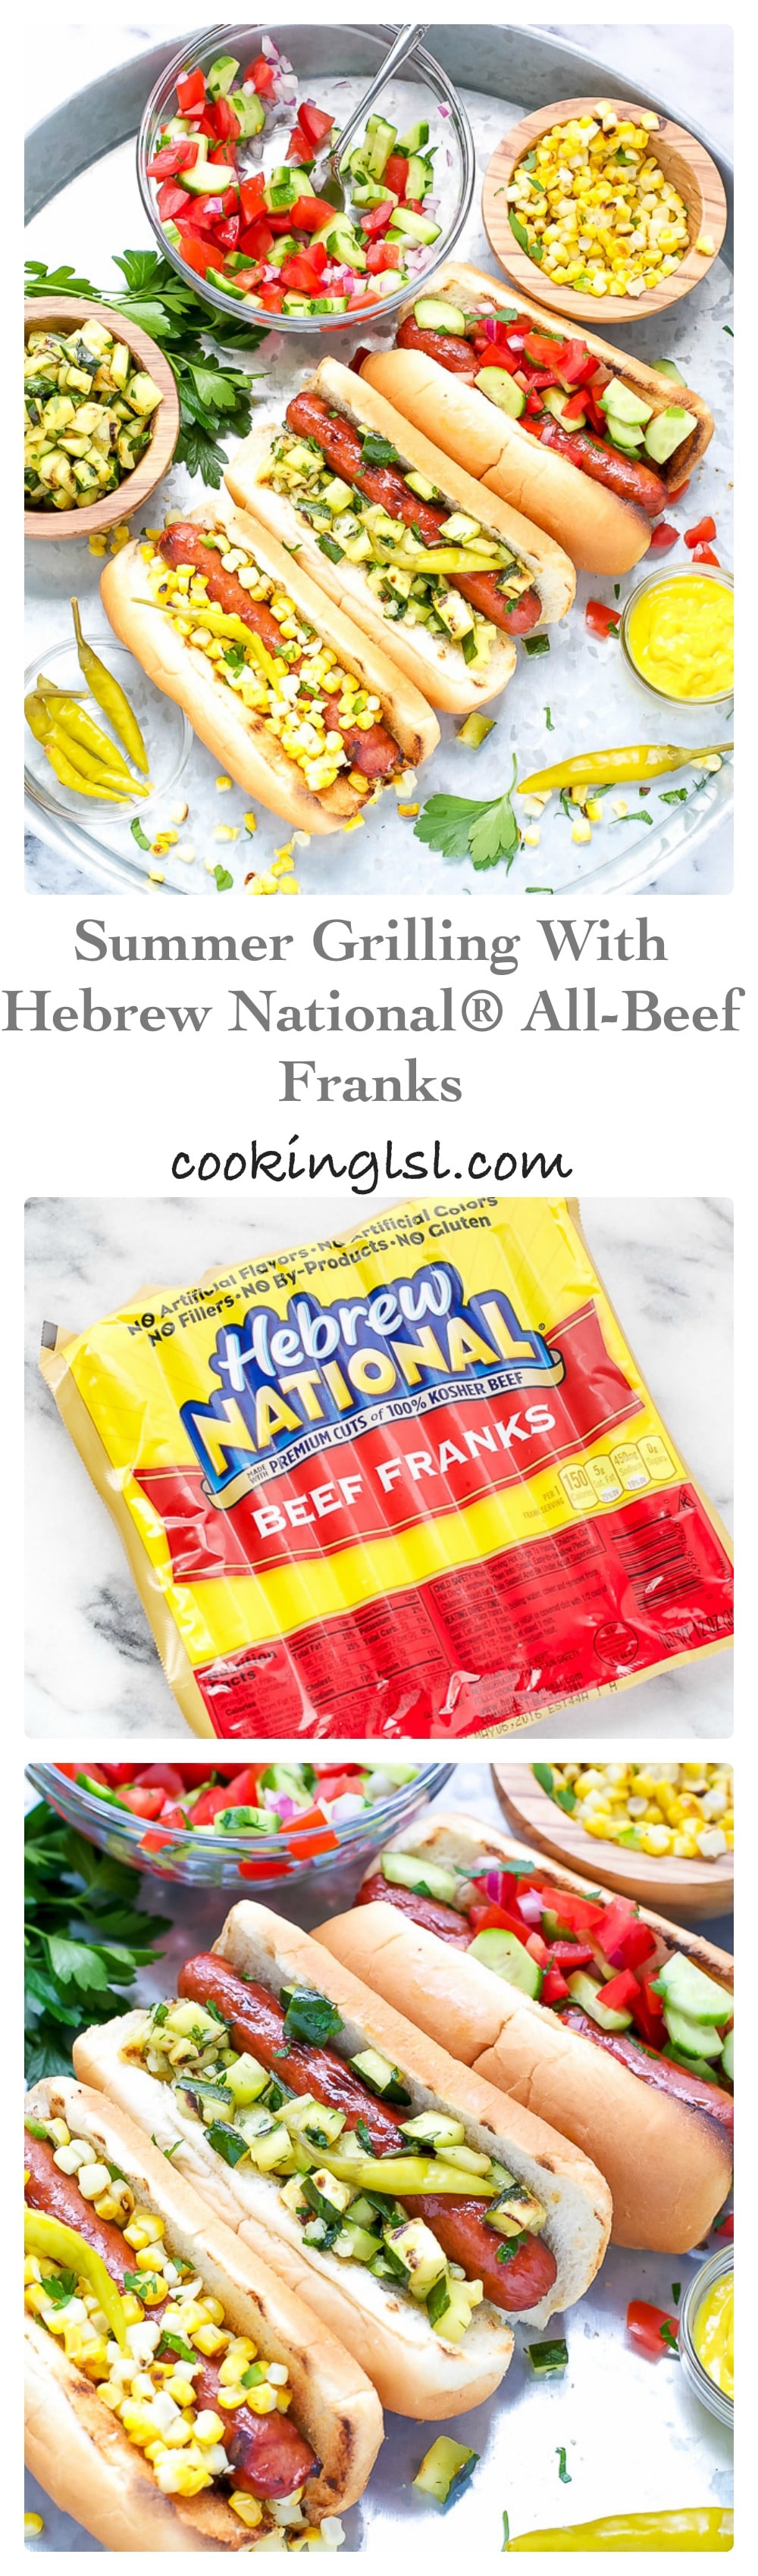 hebrew-national-hot-dogs-fun-toppings